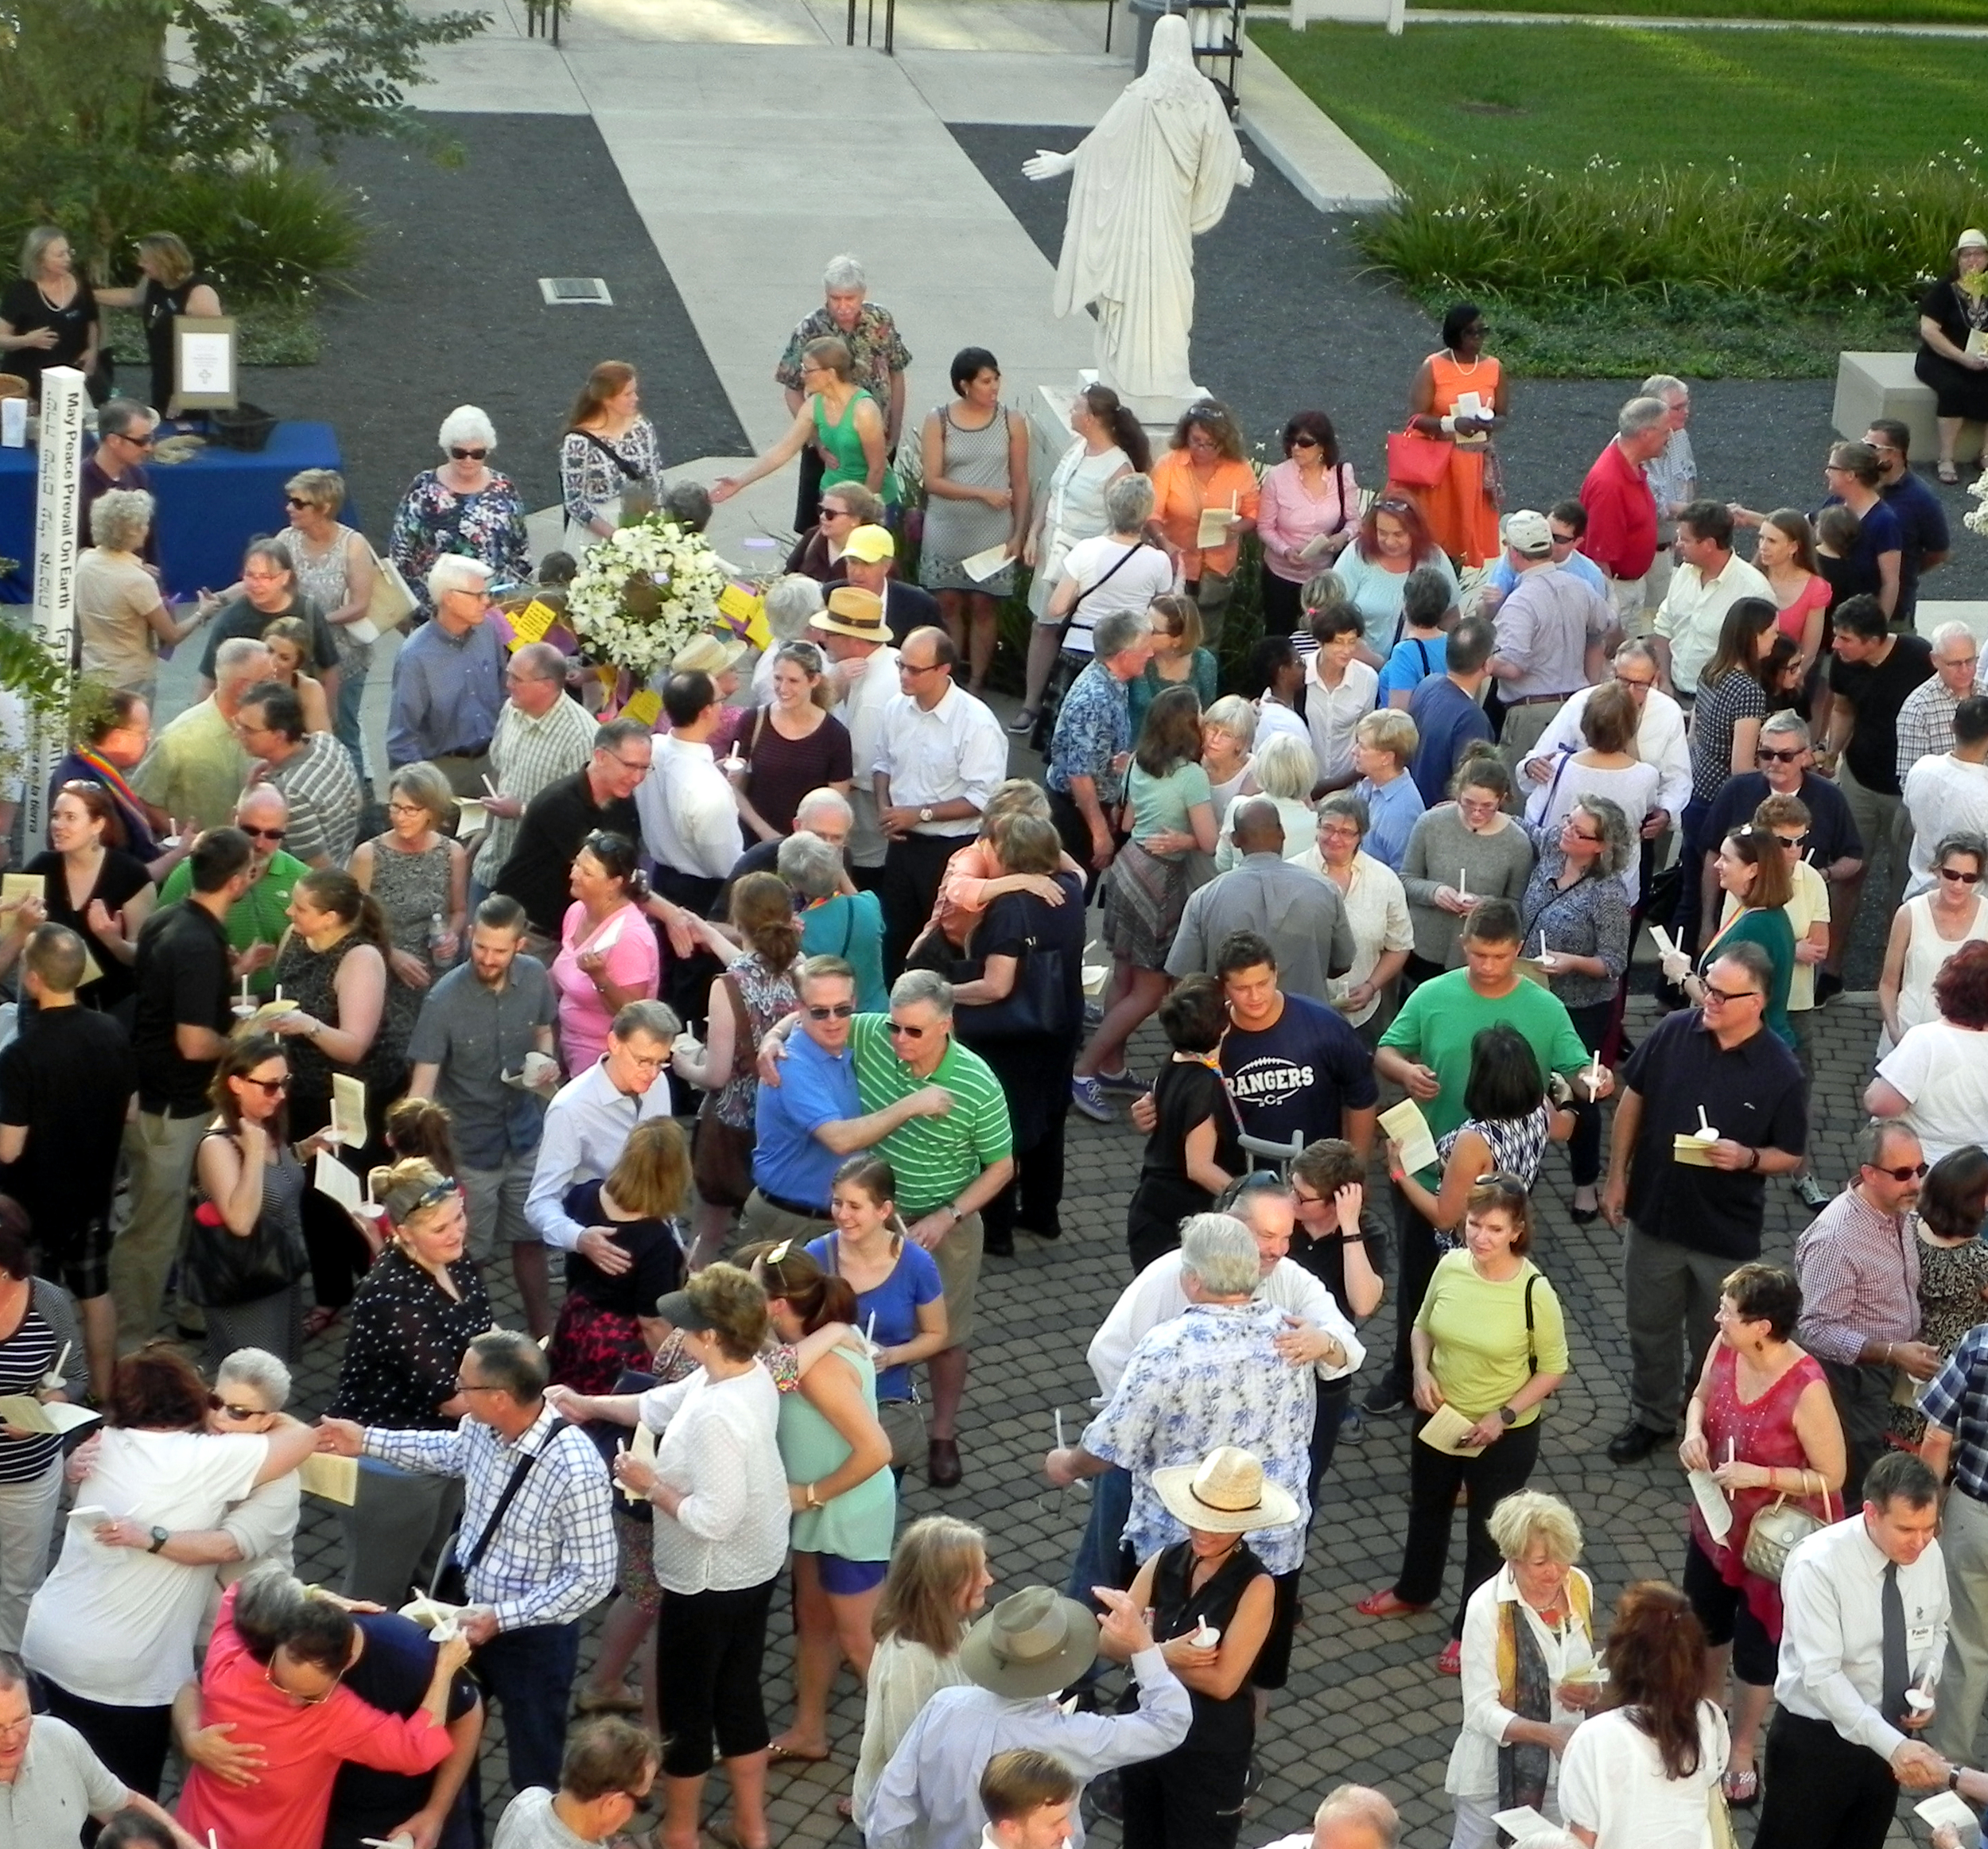 Behind the outstretched, welcoming arms of Jesus, worshipers of many congregations pass the peace at the June 15  Prayer Vigil of Lament and Hope  on St. Paul's Labyrinth.